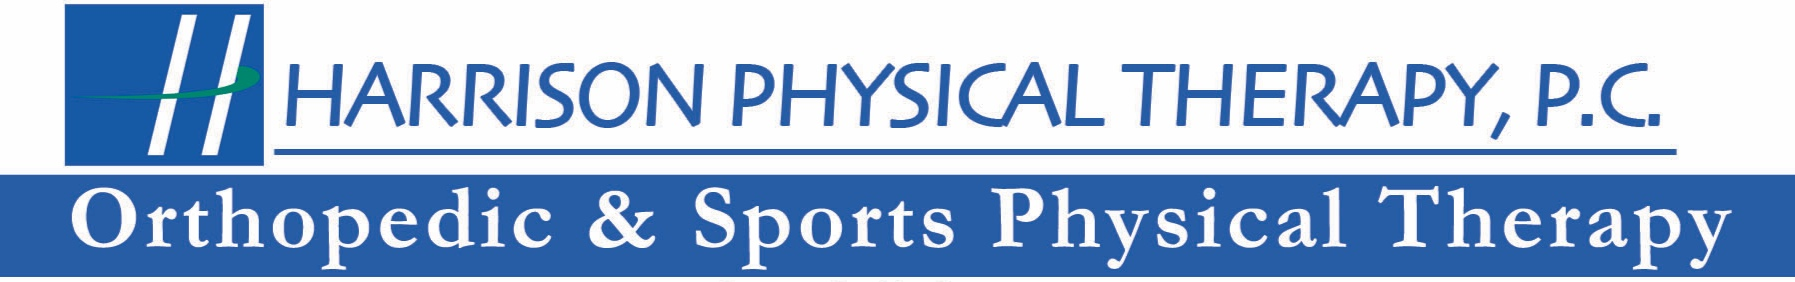 • Post-Surgical Rehabilitation • Total Joint Replacement Rehabilitation• Shoulder & Knee Rehabilitation • Foot & Ankle Rehabilitation • Neck & Back Pain• Automobile Injuries • Worker's Compensation • Arthritis & Joint Pain - 798 Route 9 Fishkill, NY845-896-3750more….